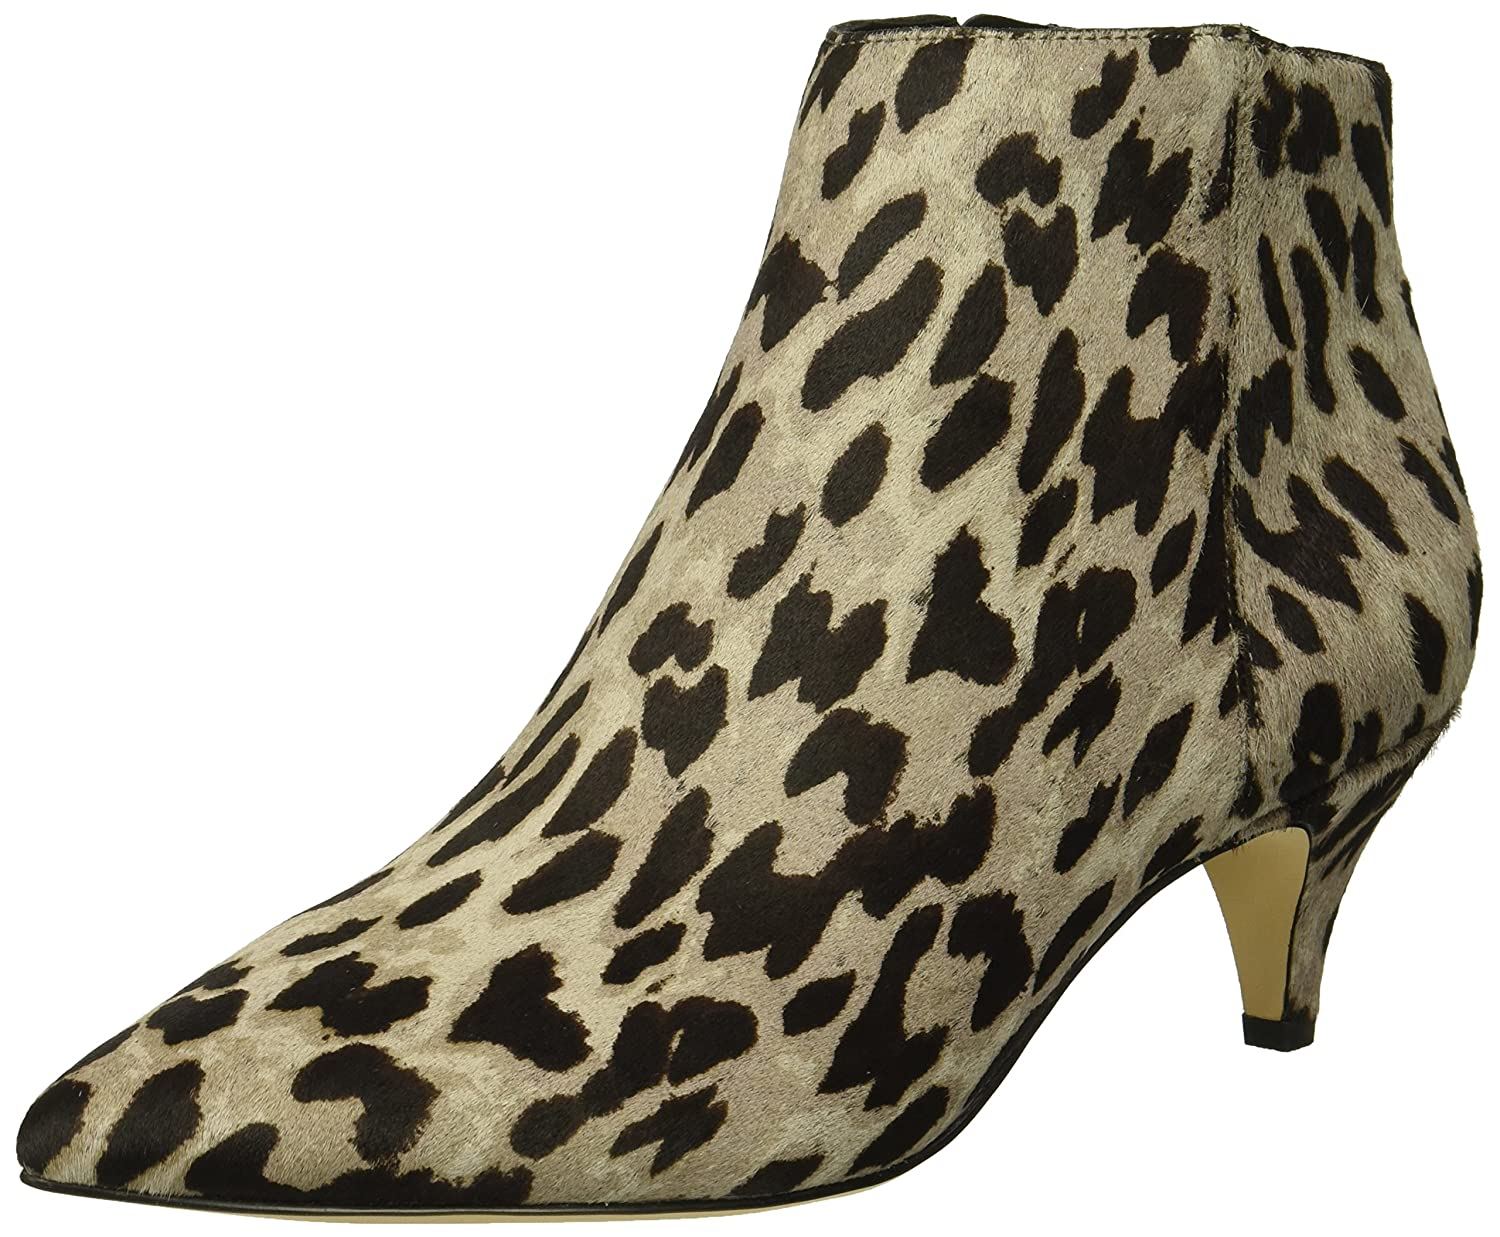 Sam Edelman Women's Kinzey Fashion Boot B07BR9VRK5 7.5 W US|Grey/Multi Leopard